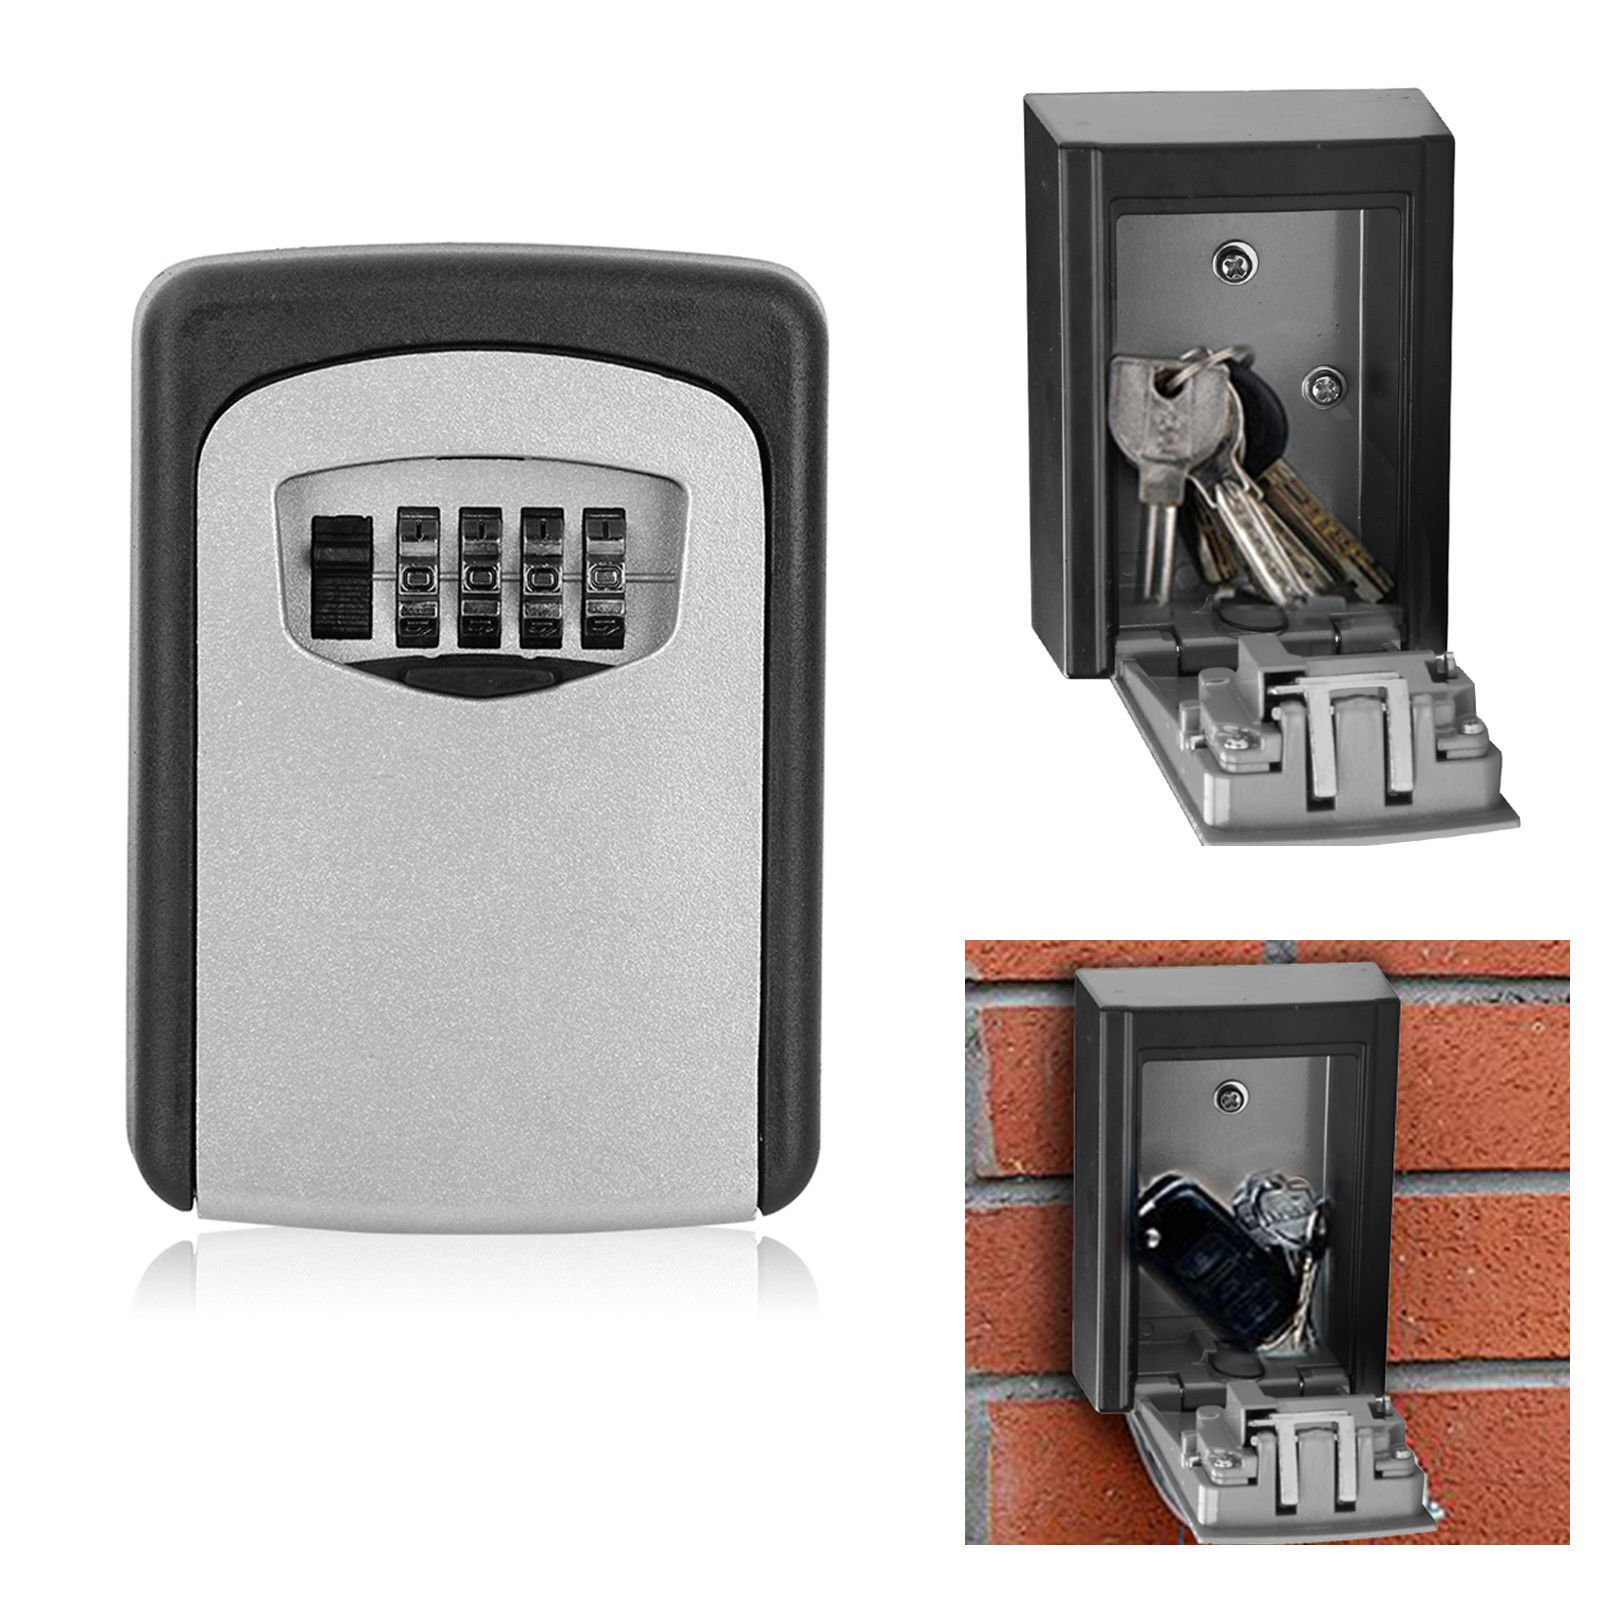 Geekercity 4 Digit Combination Wall Mount Key Safe Lock Box Code Secure Resettable Key Storage Box Rustproof Weather Resistant for Outdoor Indoors Holds up to 5 Keys